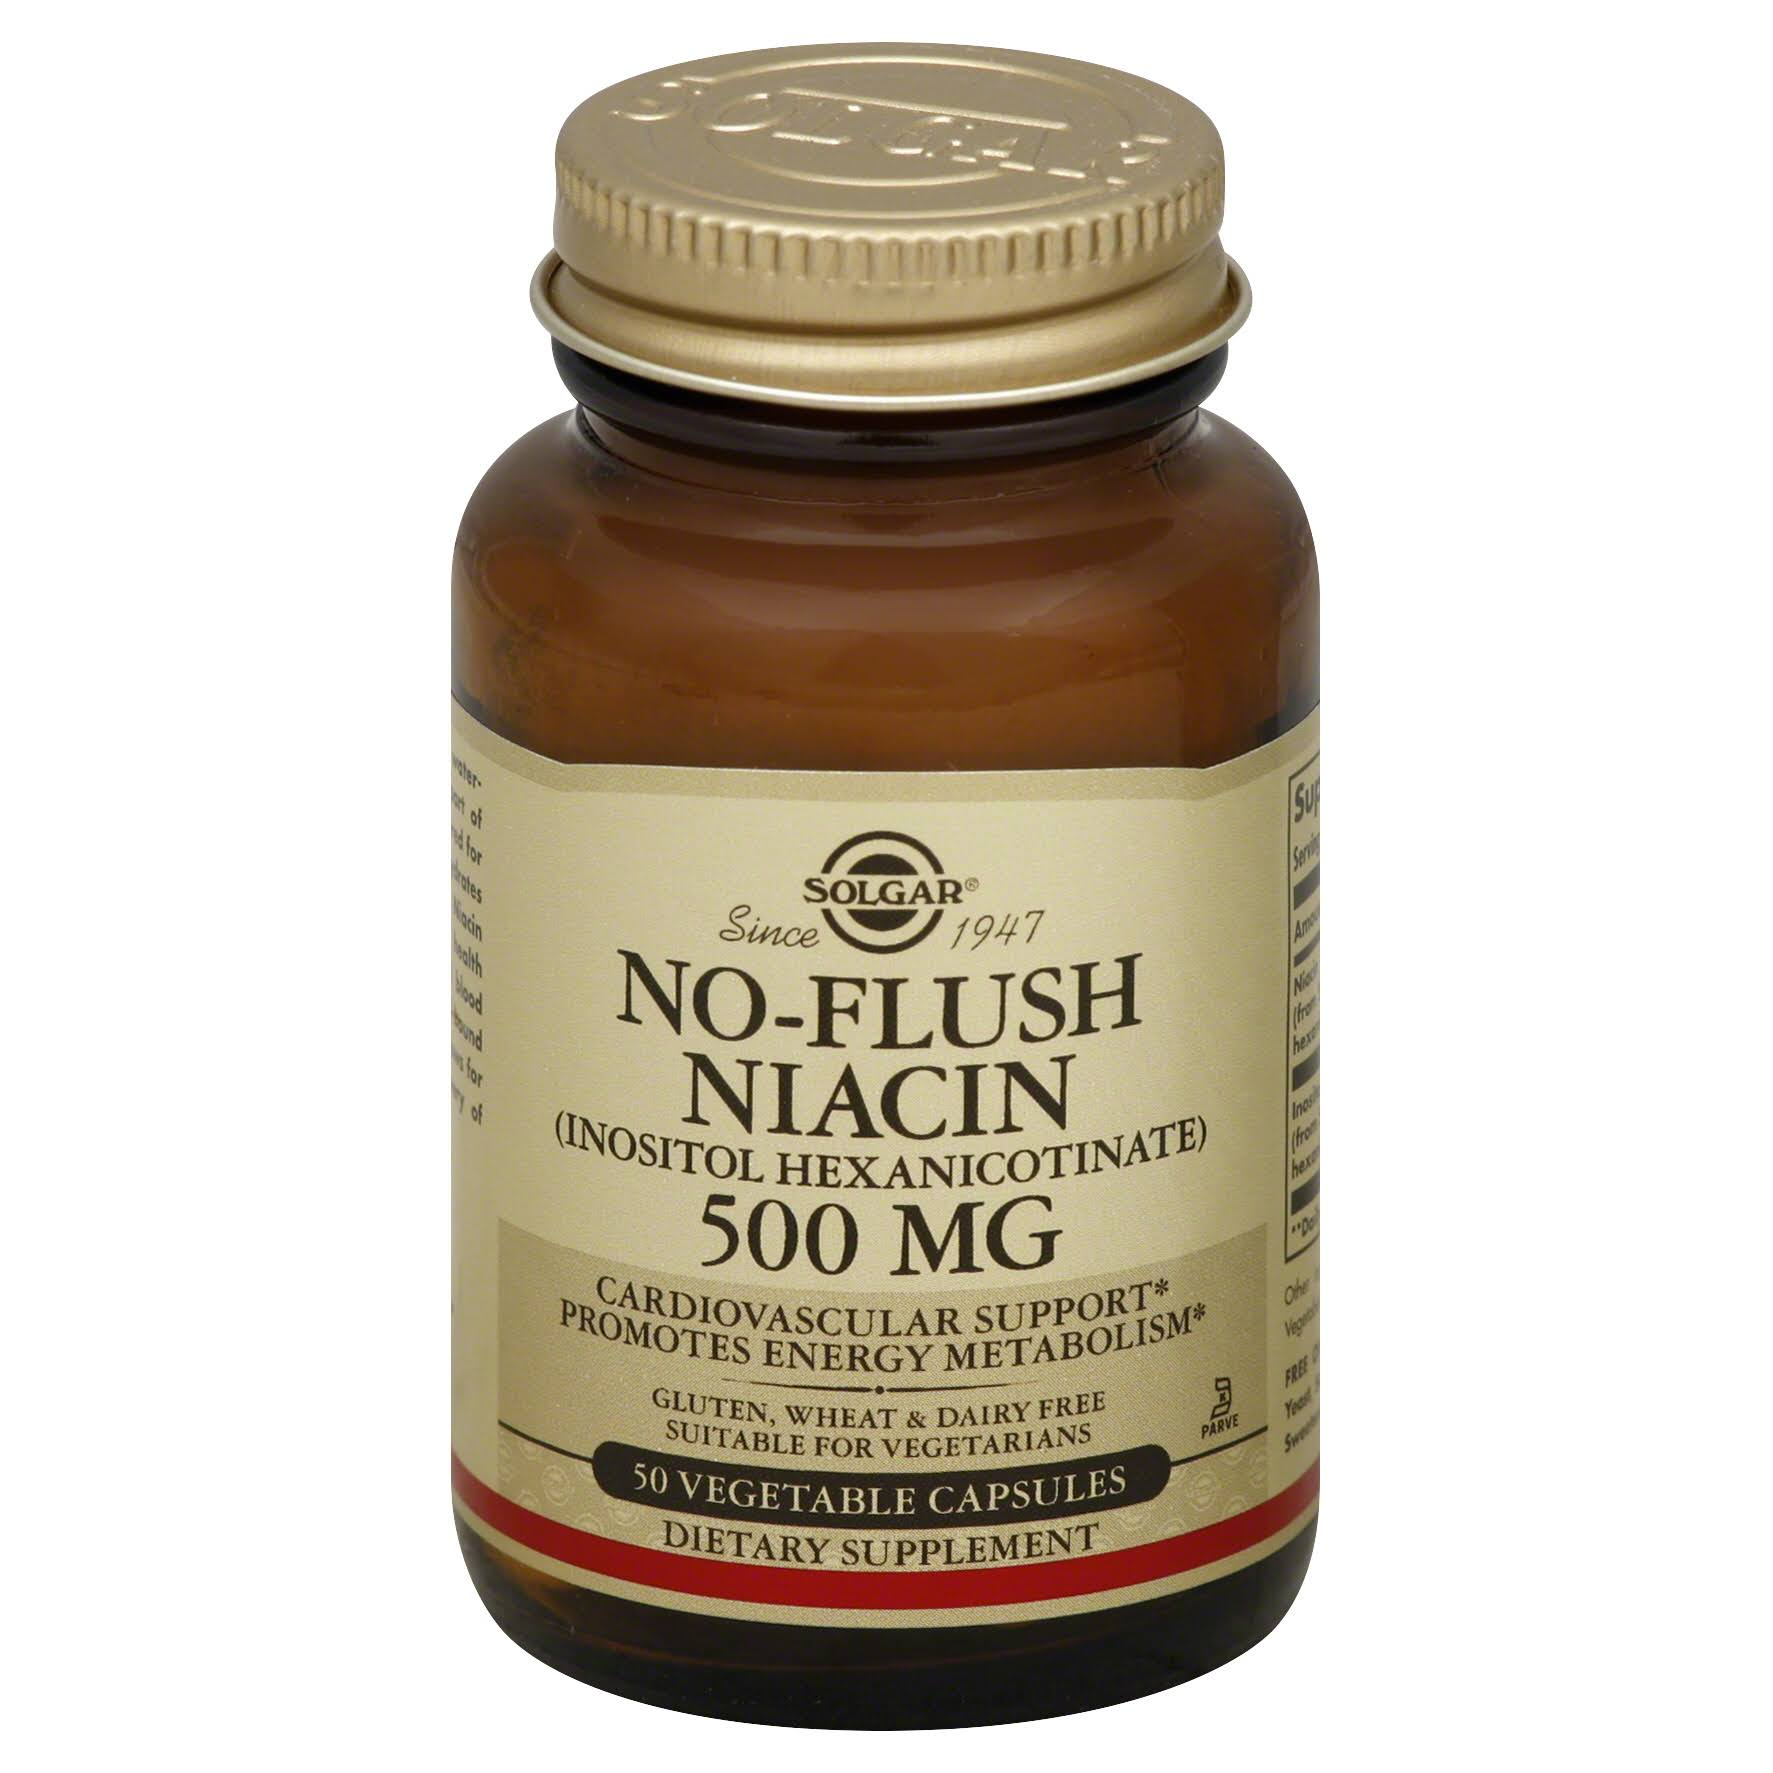 Solgar No-Flush Niacin 500 mg - 50 capsules